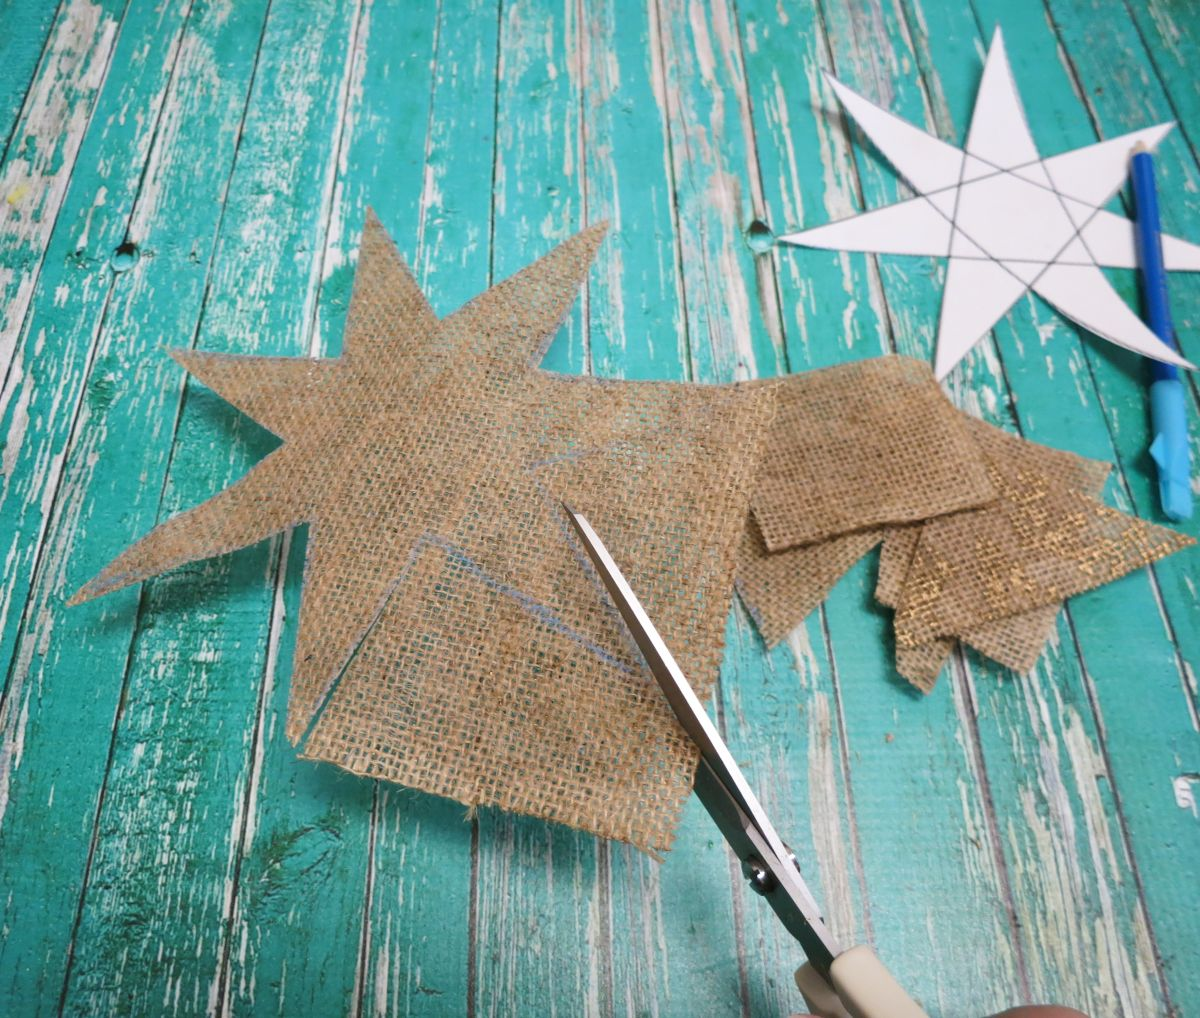 Cutting the star burlap